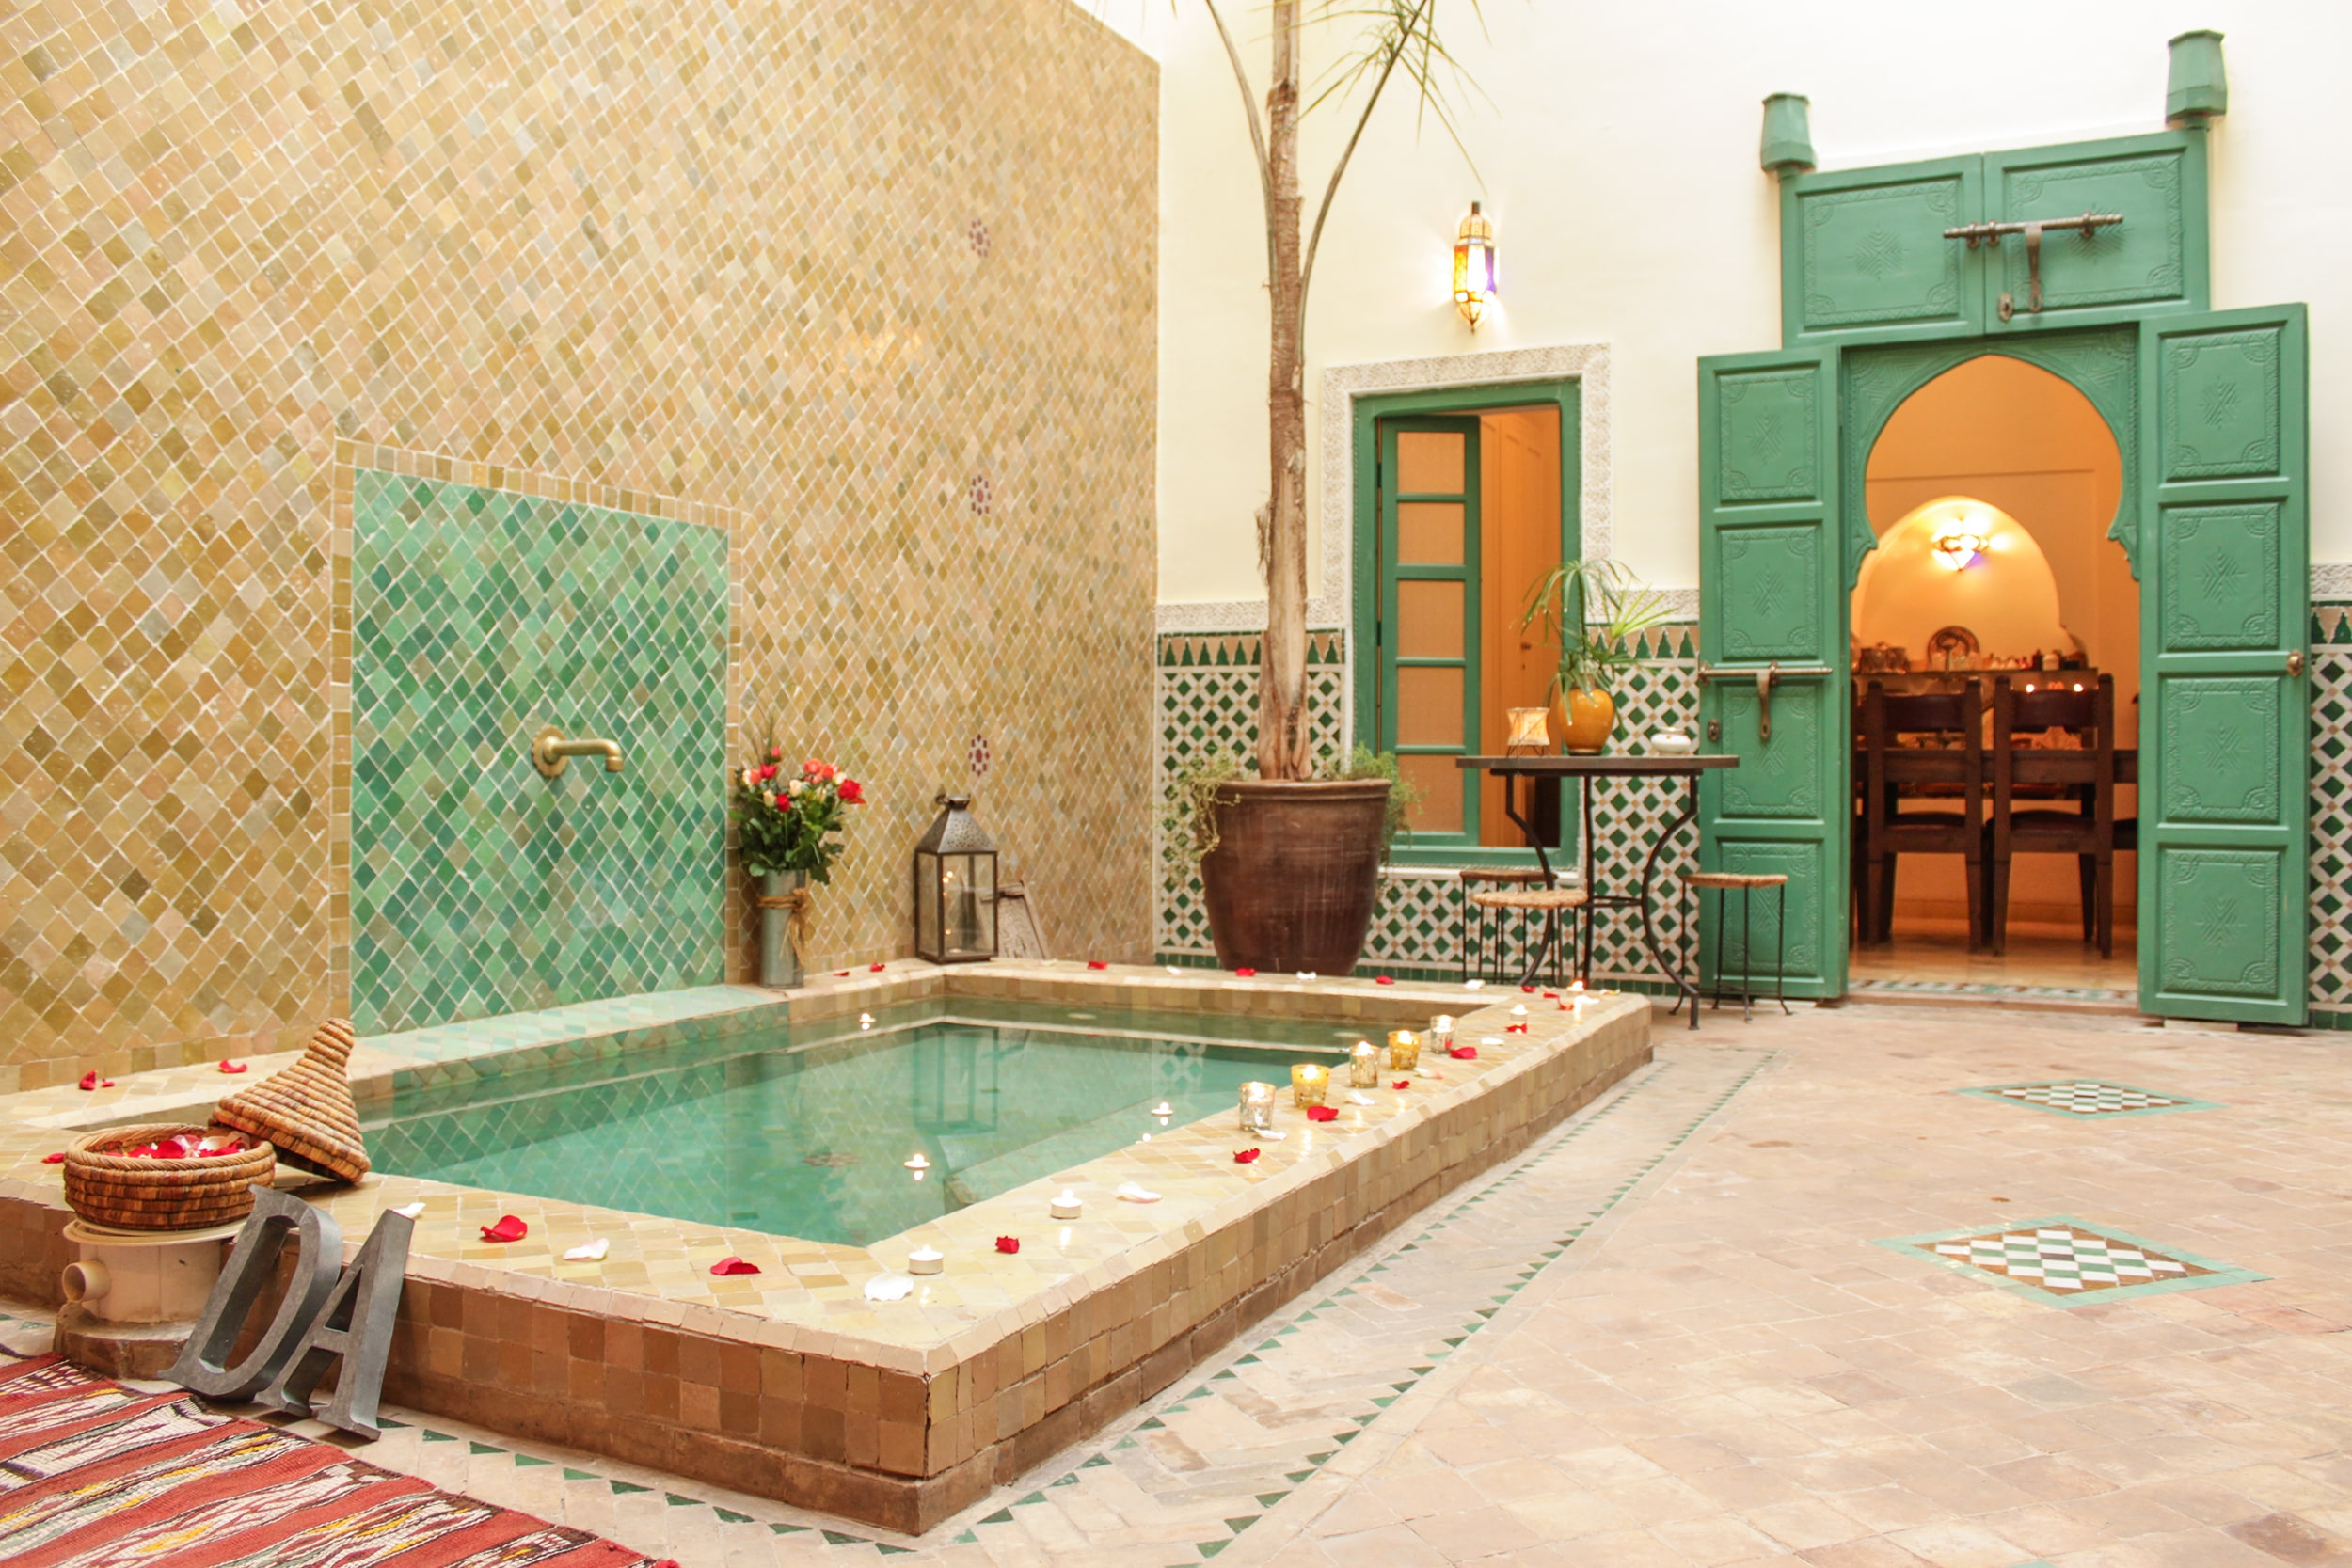 Private, 3-bedroom Riad, Marrakesh, Morocco